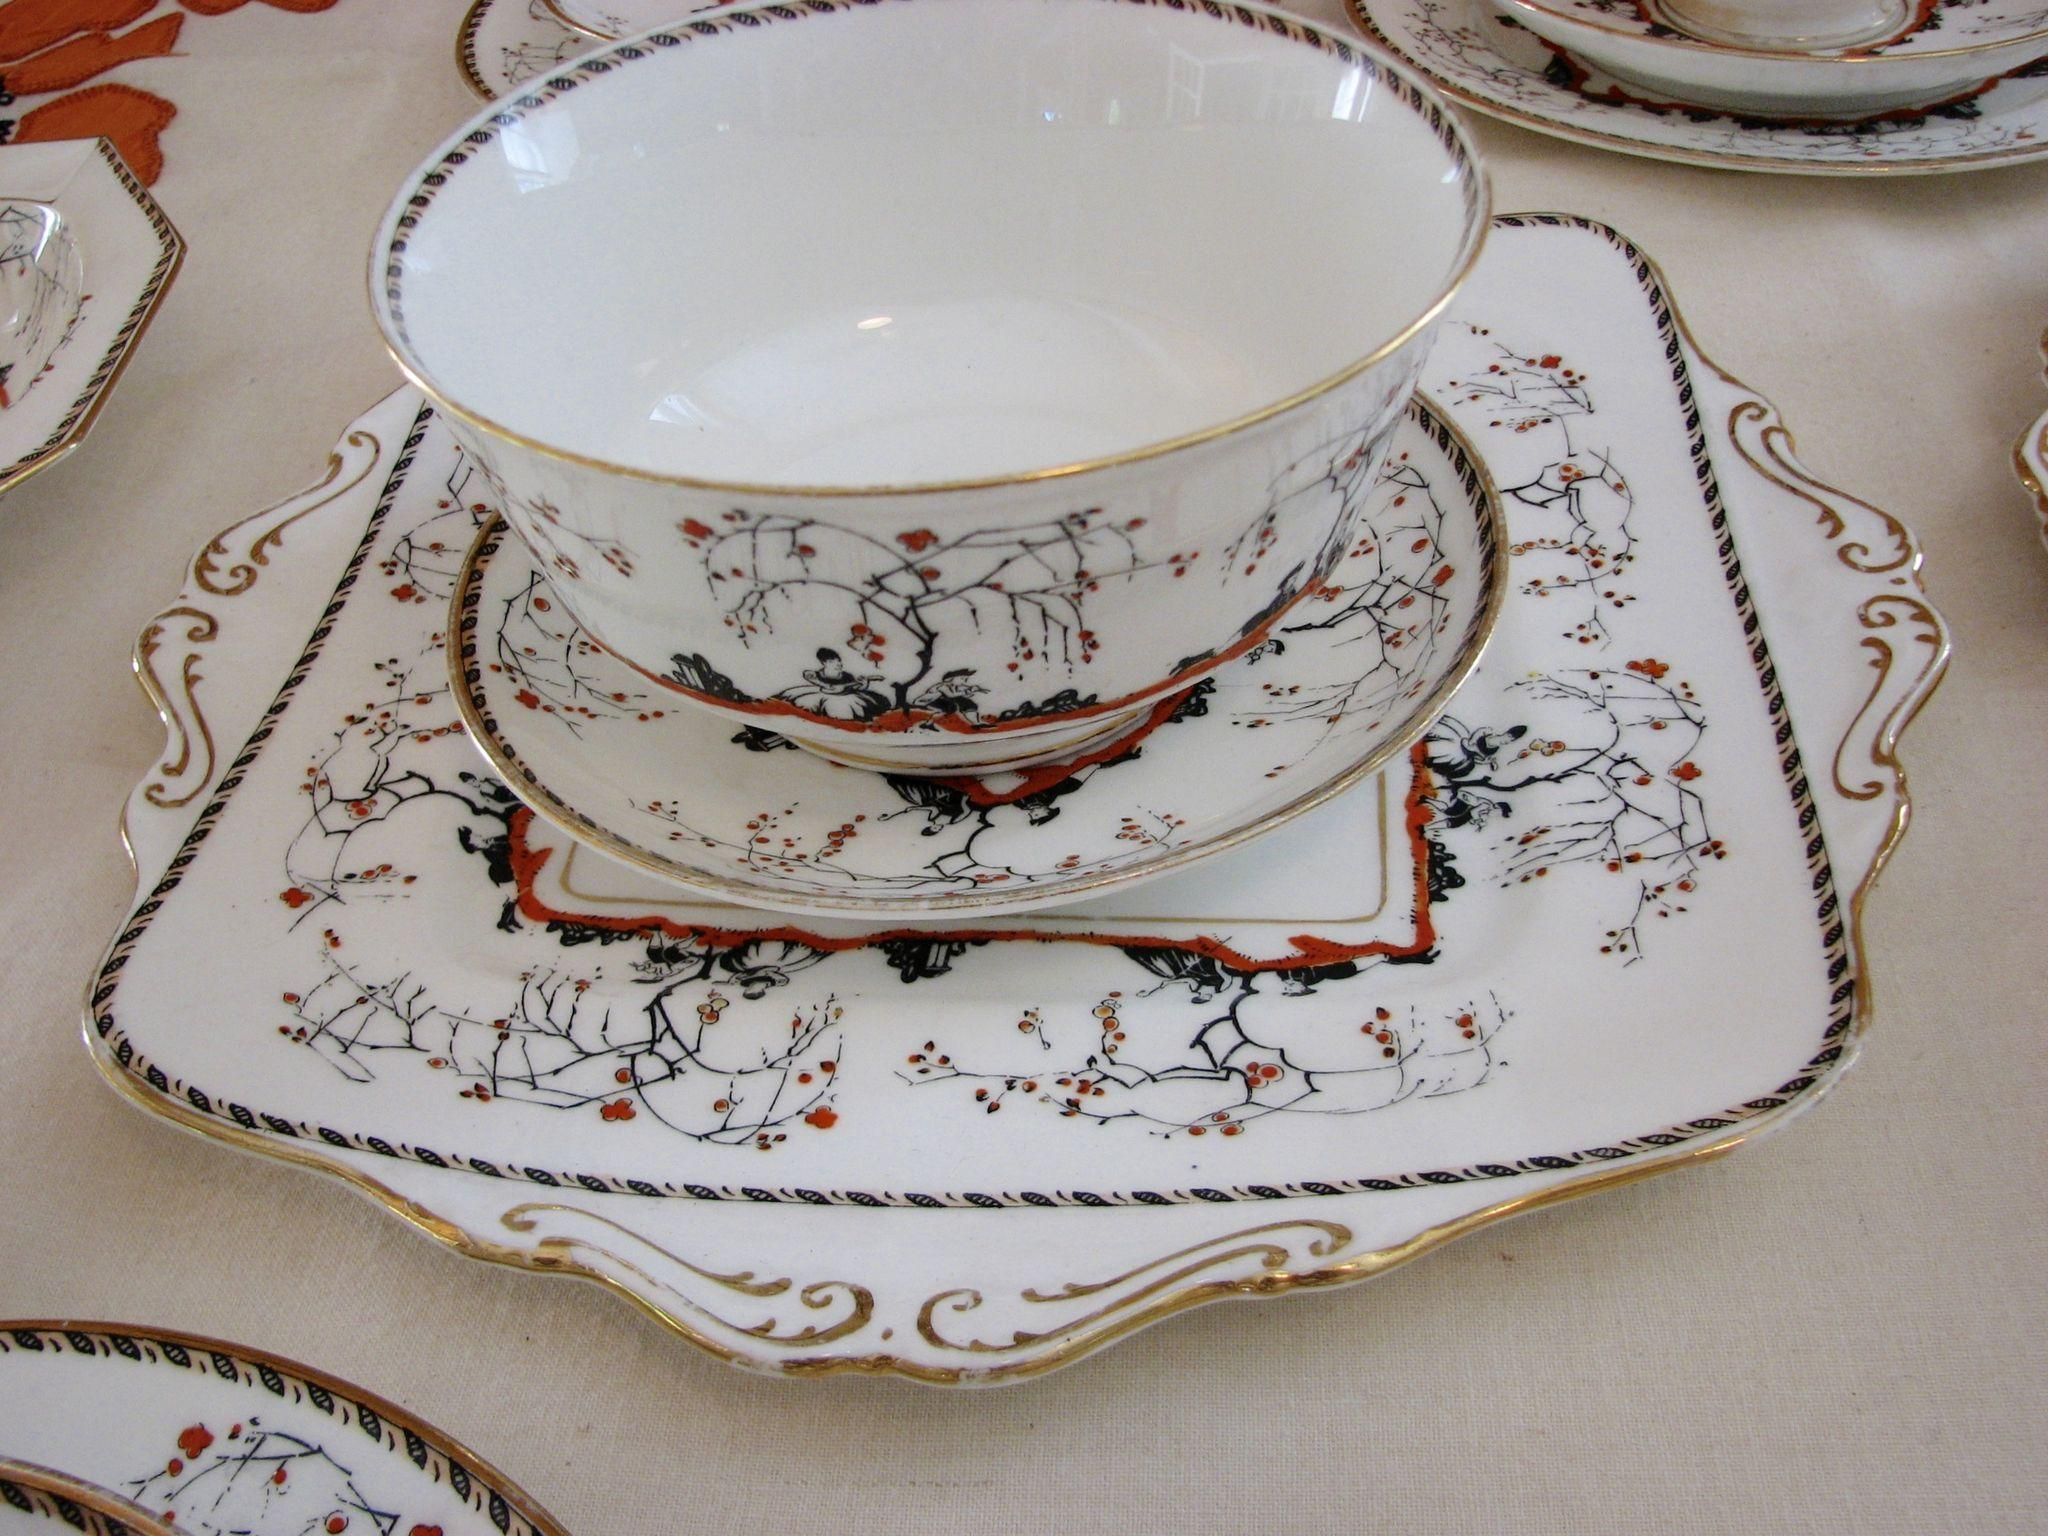 Art Deco Paragon Teaset Lovers. Paragon Art Deco Lovers Arcadia 32 PC. Set Tea Porcelain. Paragon teaset with orange and black designs of lovers in